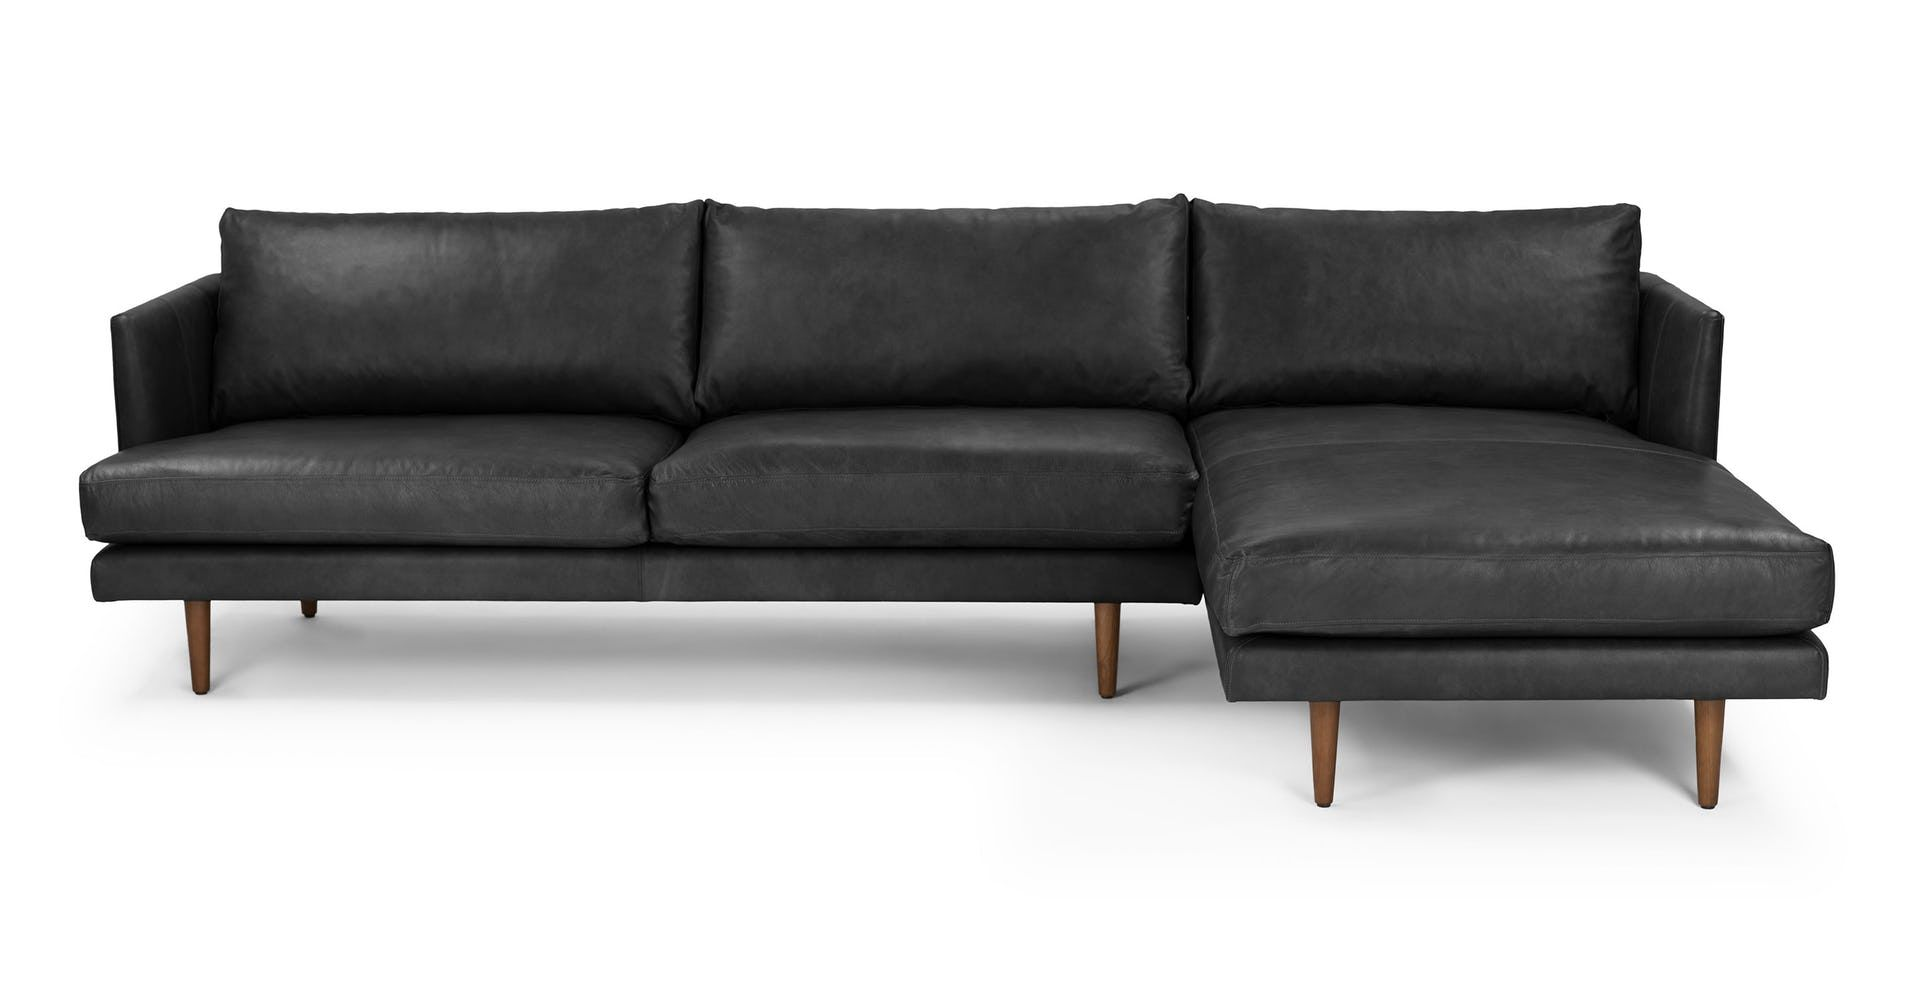 The Burrard Sectional Features Sumptuous Leather Strong Lines And Sinkable Cus Mid Century Modern Sectional Sofa Sectional Sofa Mid Century Modern Sofa Couch